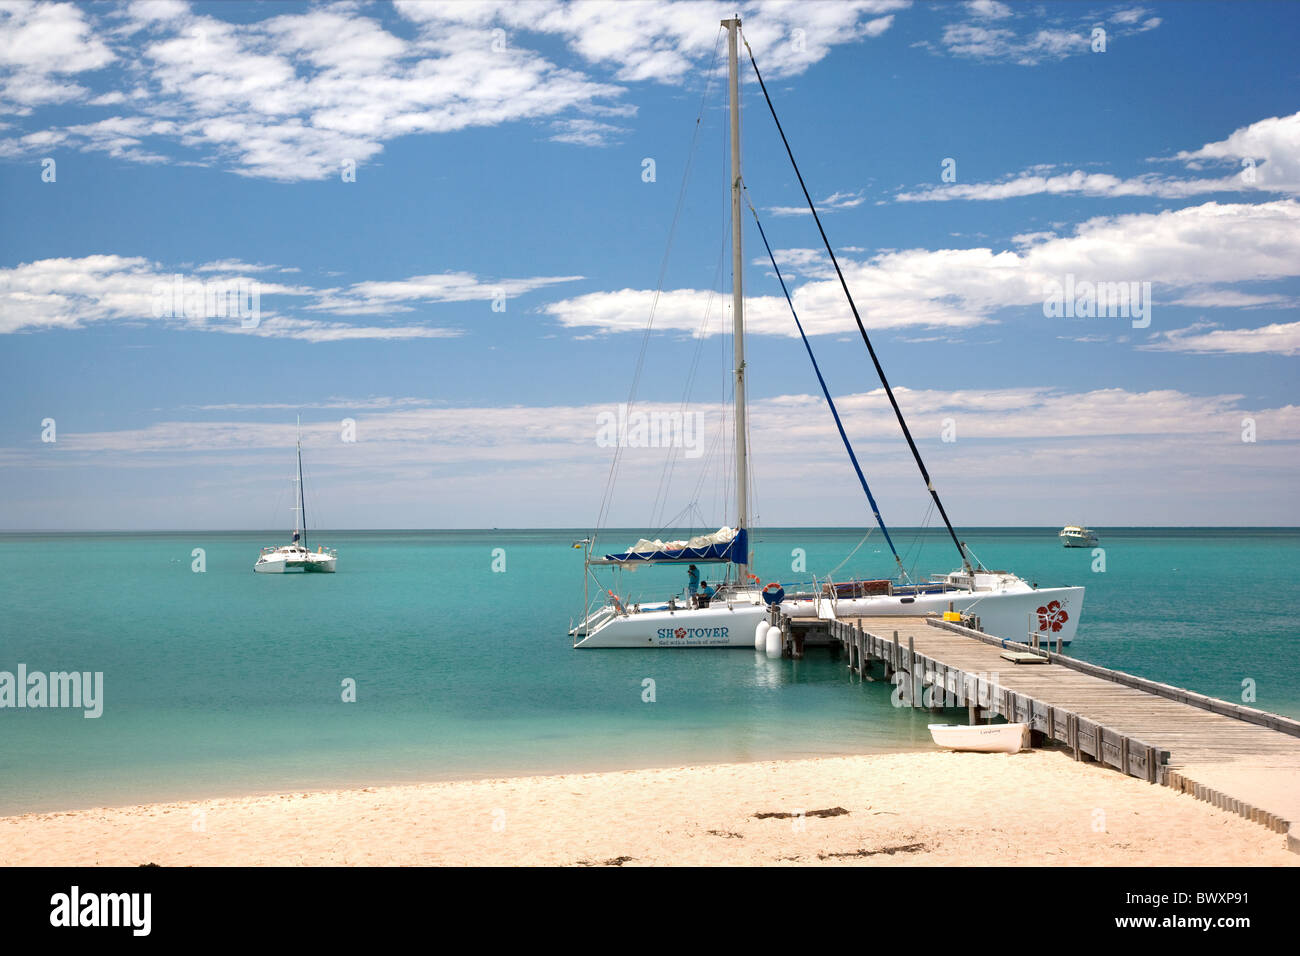 Catamaran moored at the jetty in Monkey Mia on Shark Bay Western Australia - Stock Image